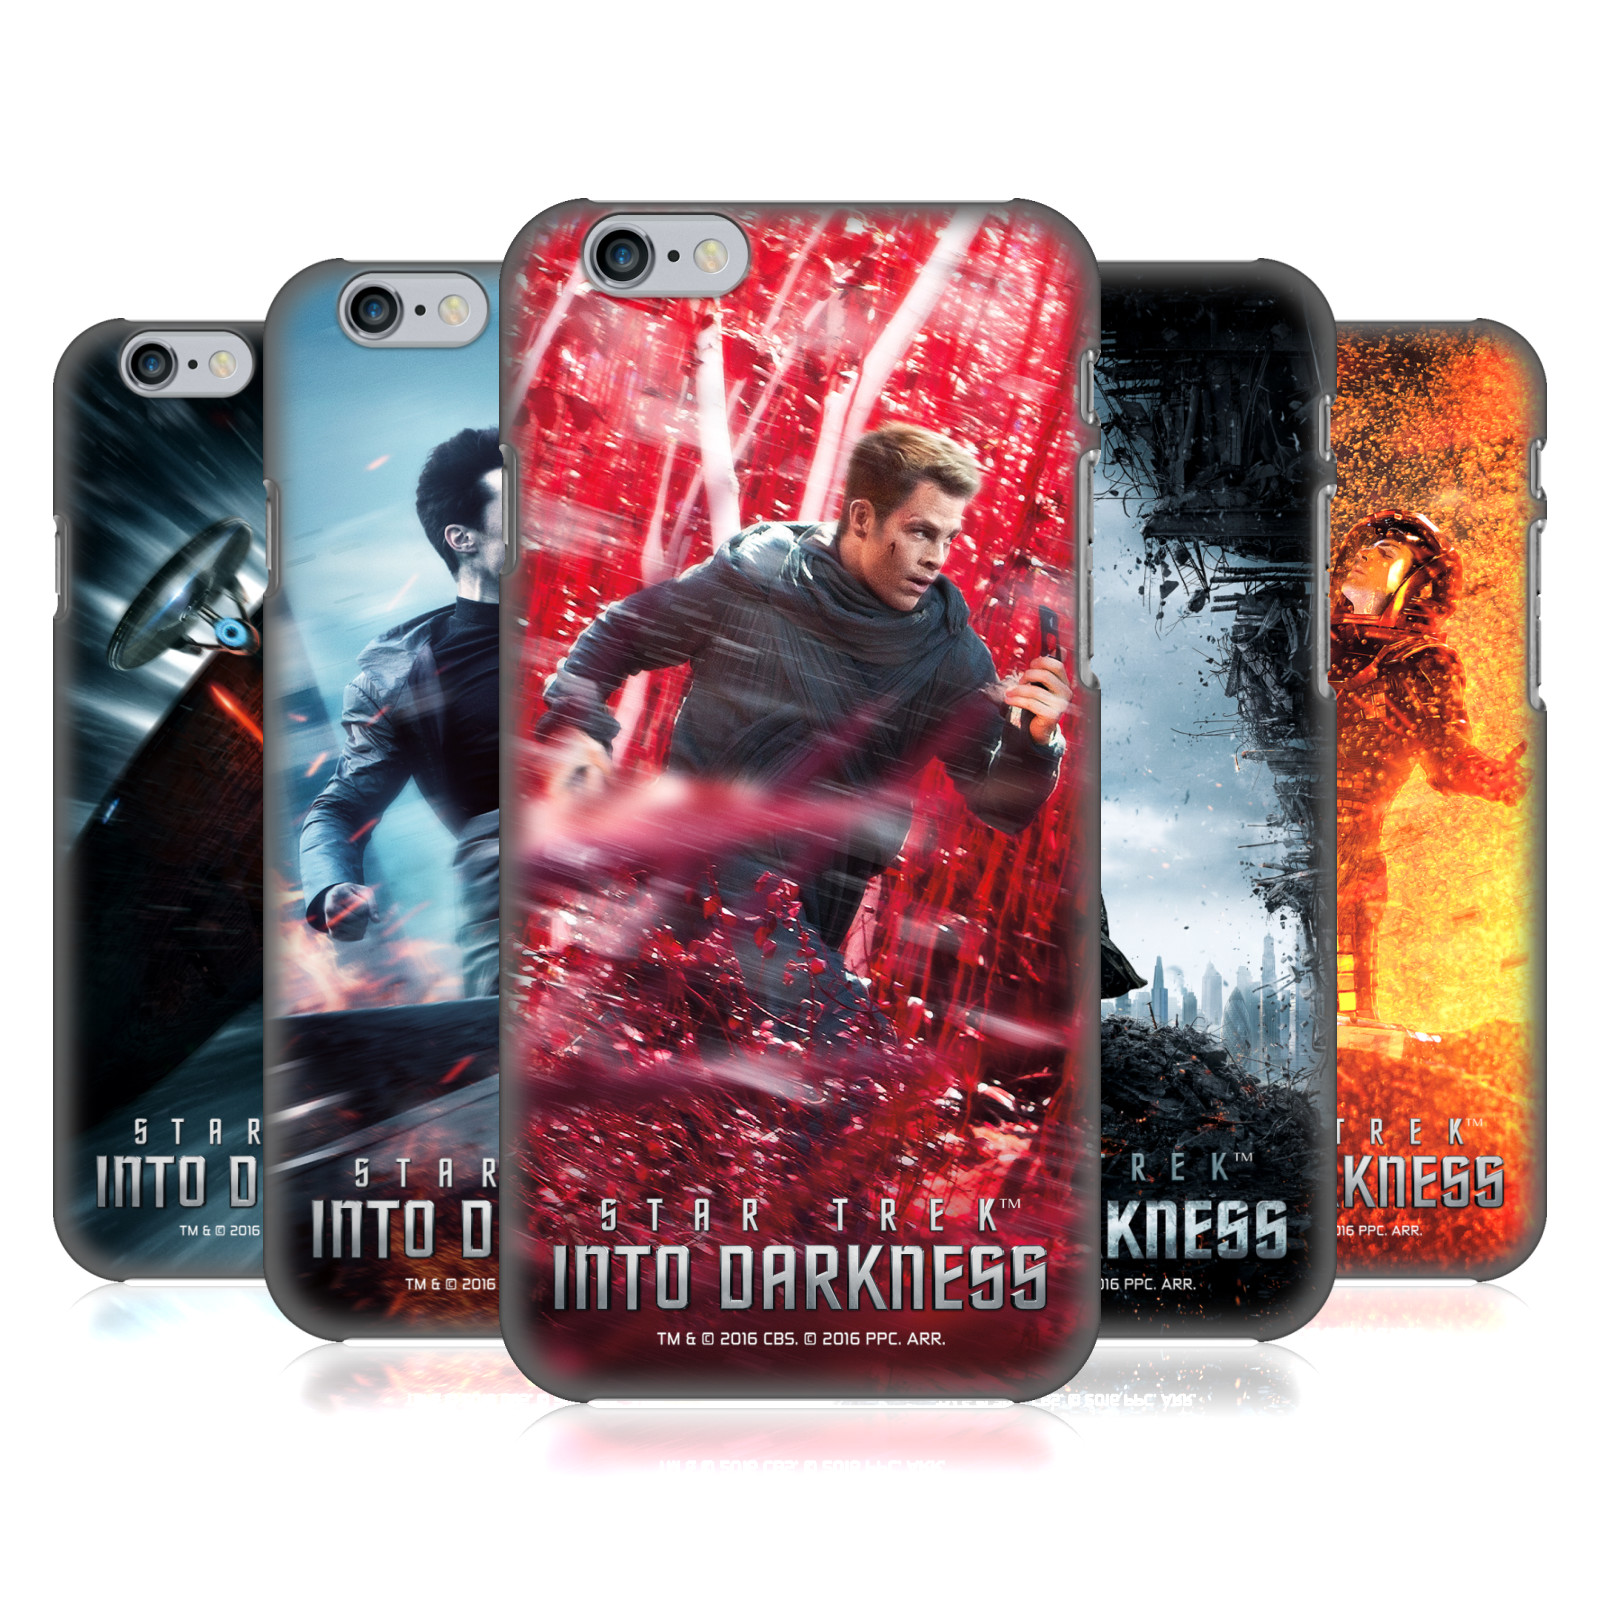 Star Trek Posters Into Darkness XII